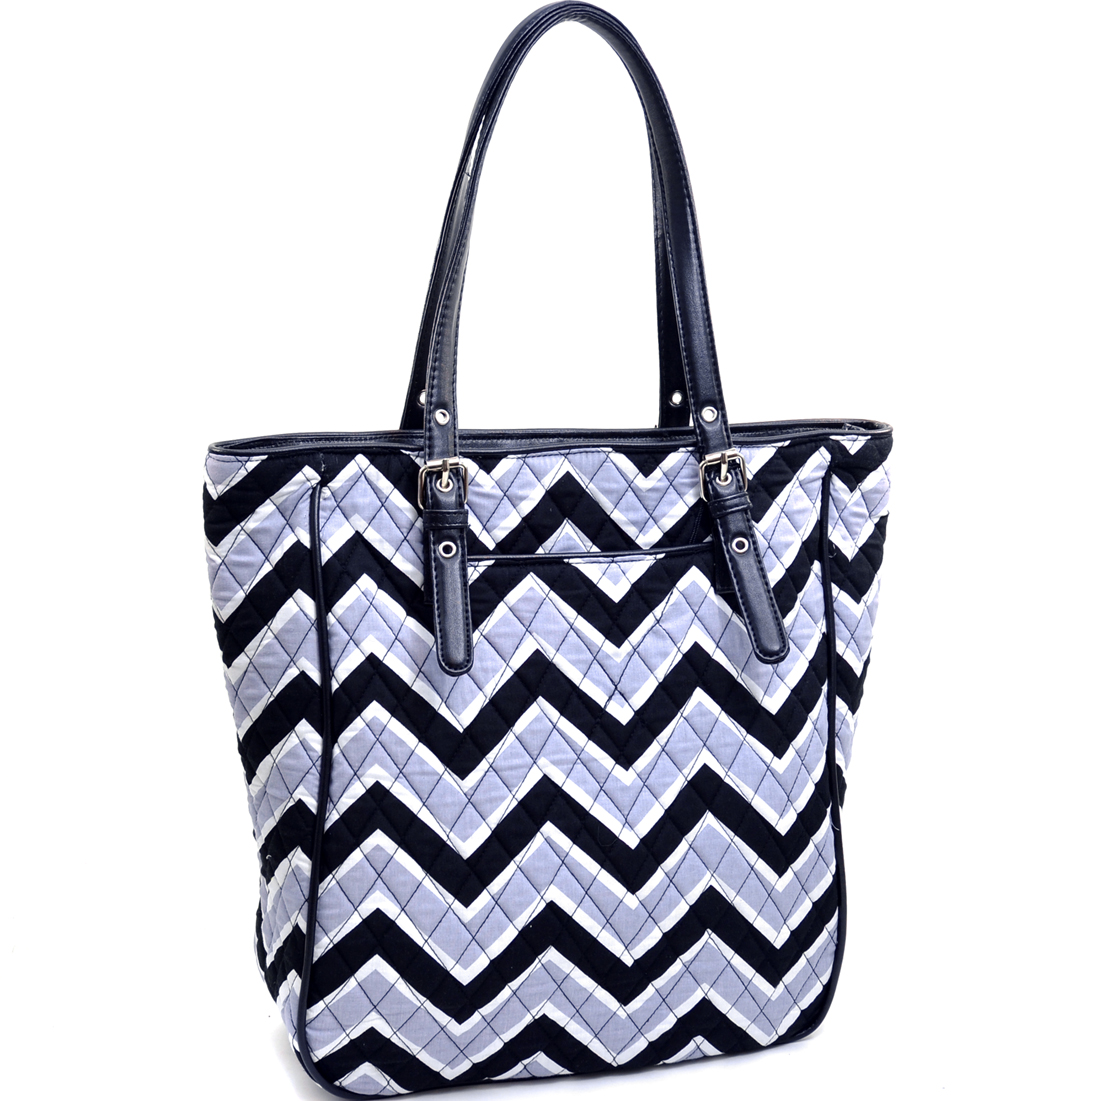 Rosen Blue™ Quilted Neon Chevron Print Weekend Tote